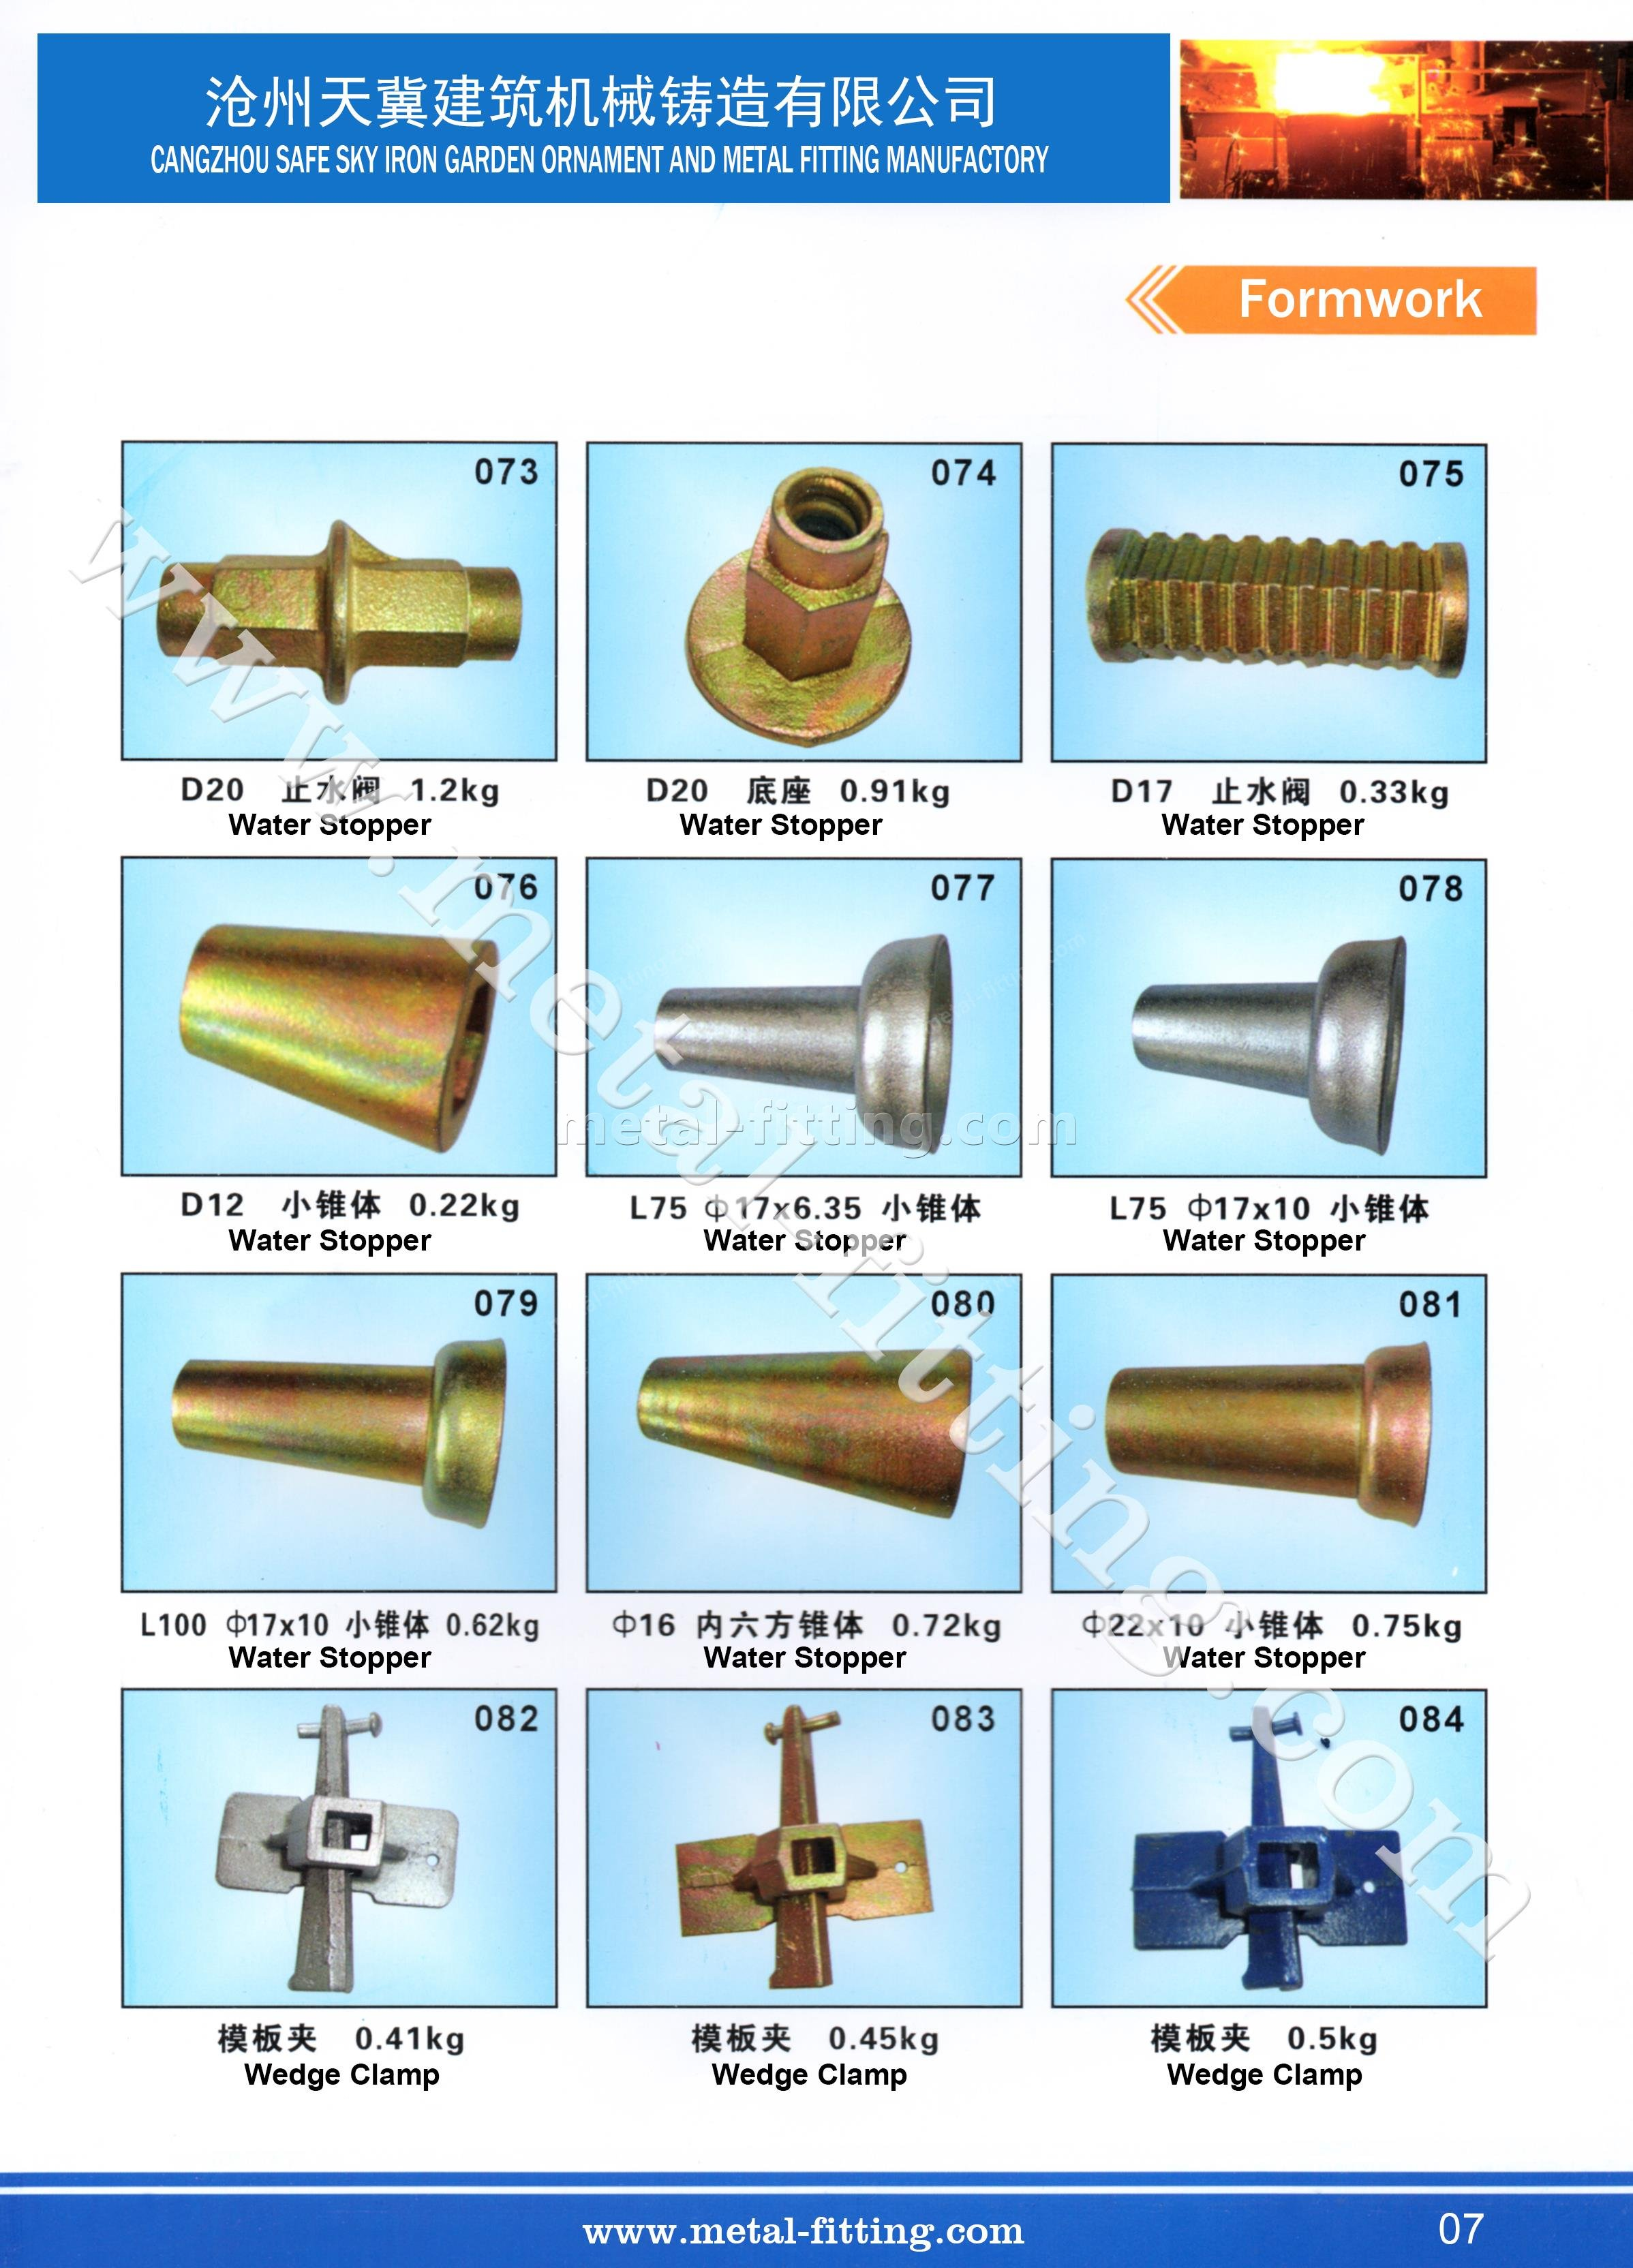 casting steel metal fitting, scaffolding system-7